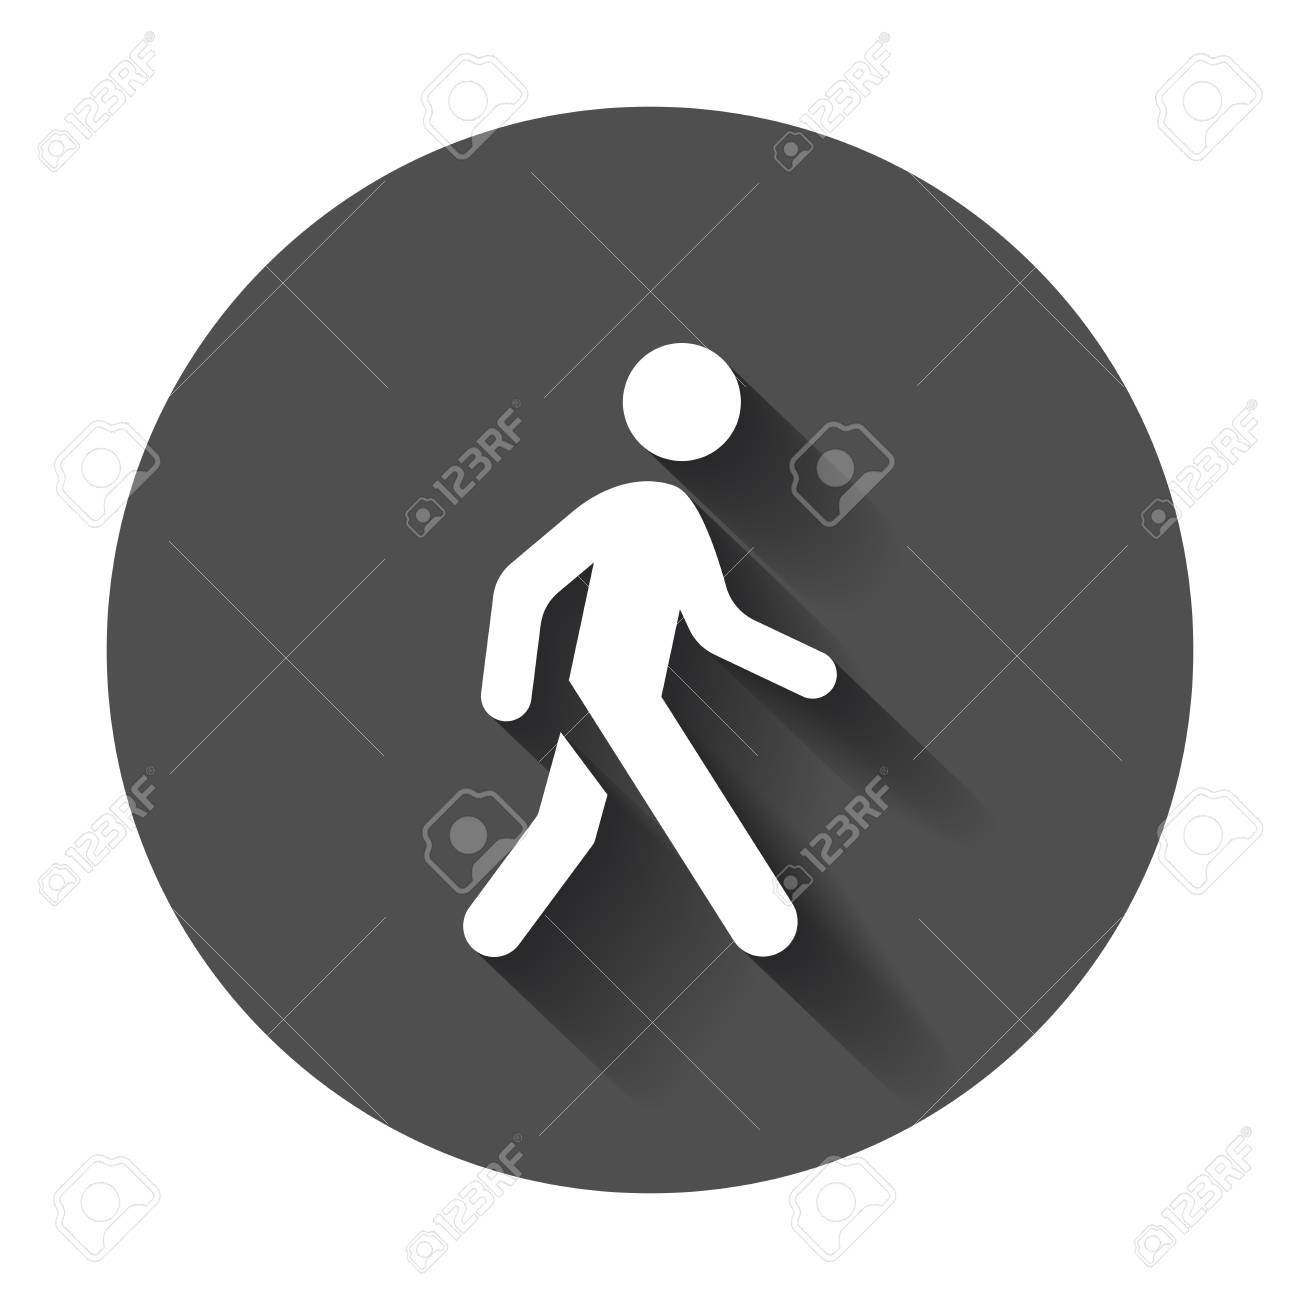 walking man vector icon people walk sign illustration on black royalty free cliparts vectors and stock illustration image 82678487 walking man vector icon people walk sign illustration on black